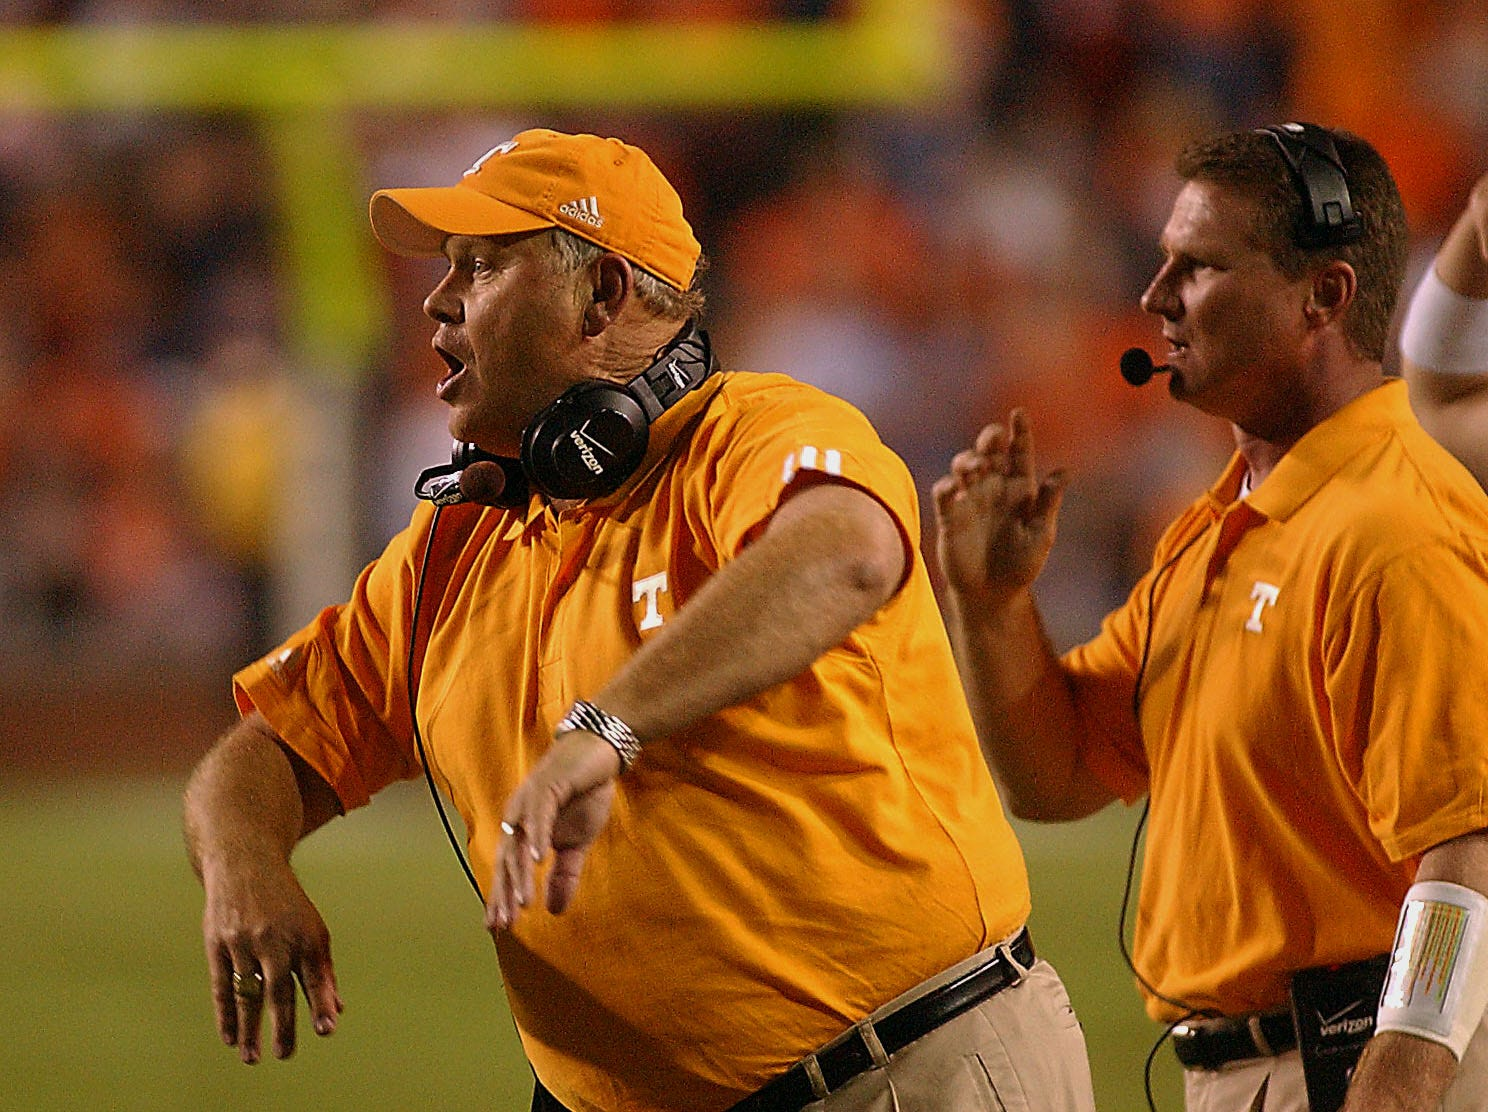 Tennessee head coach Phillip Fulmer reacts to a play at the end of the first half Saturday night in Auburn, Alabama. 10/4/2003